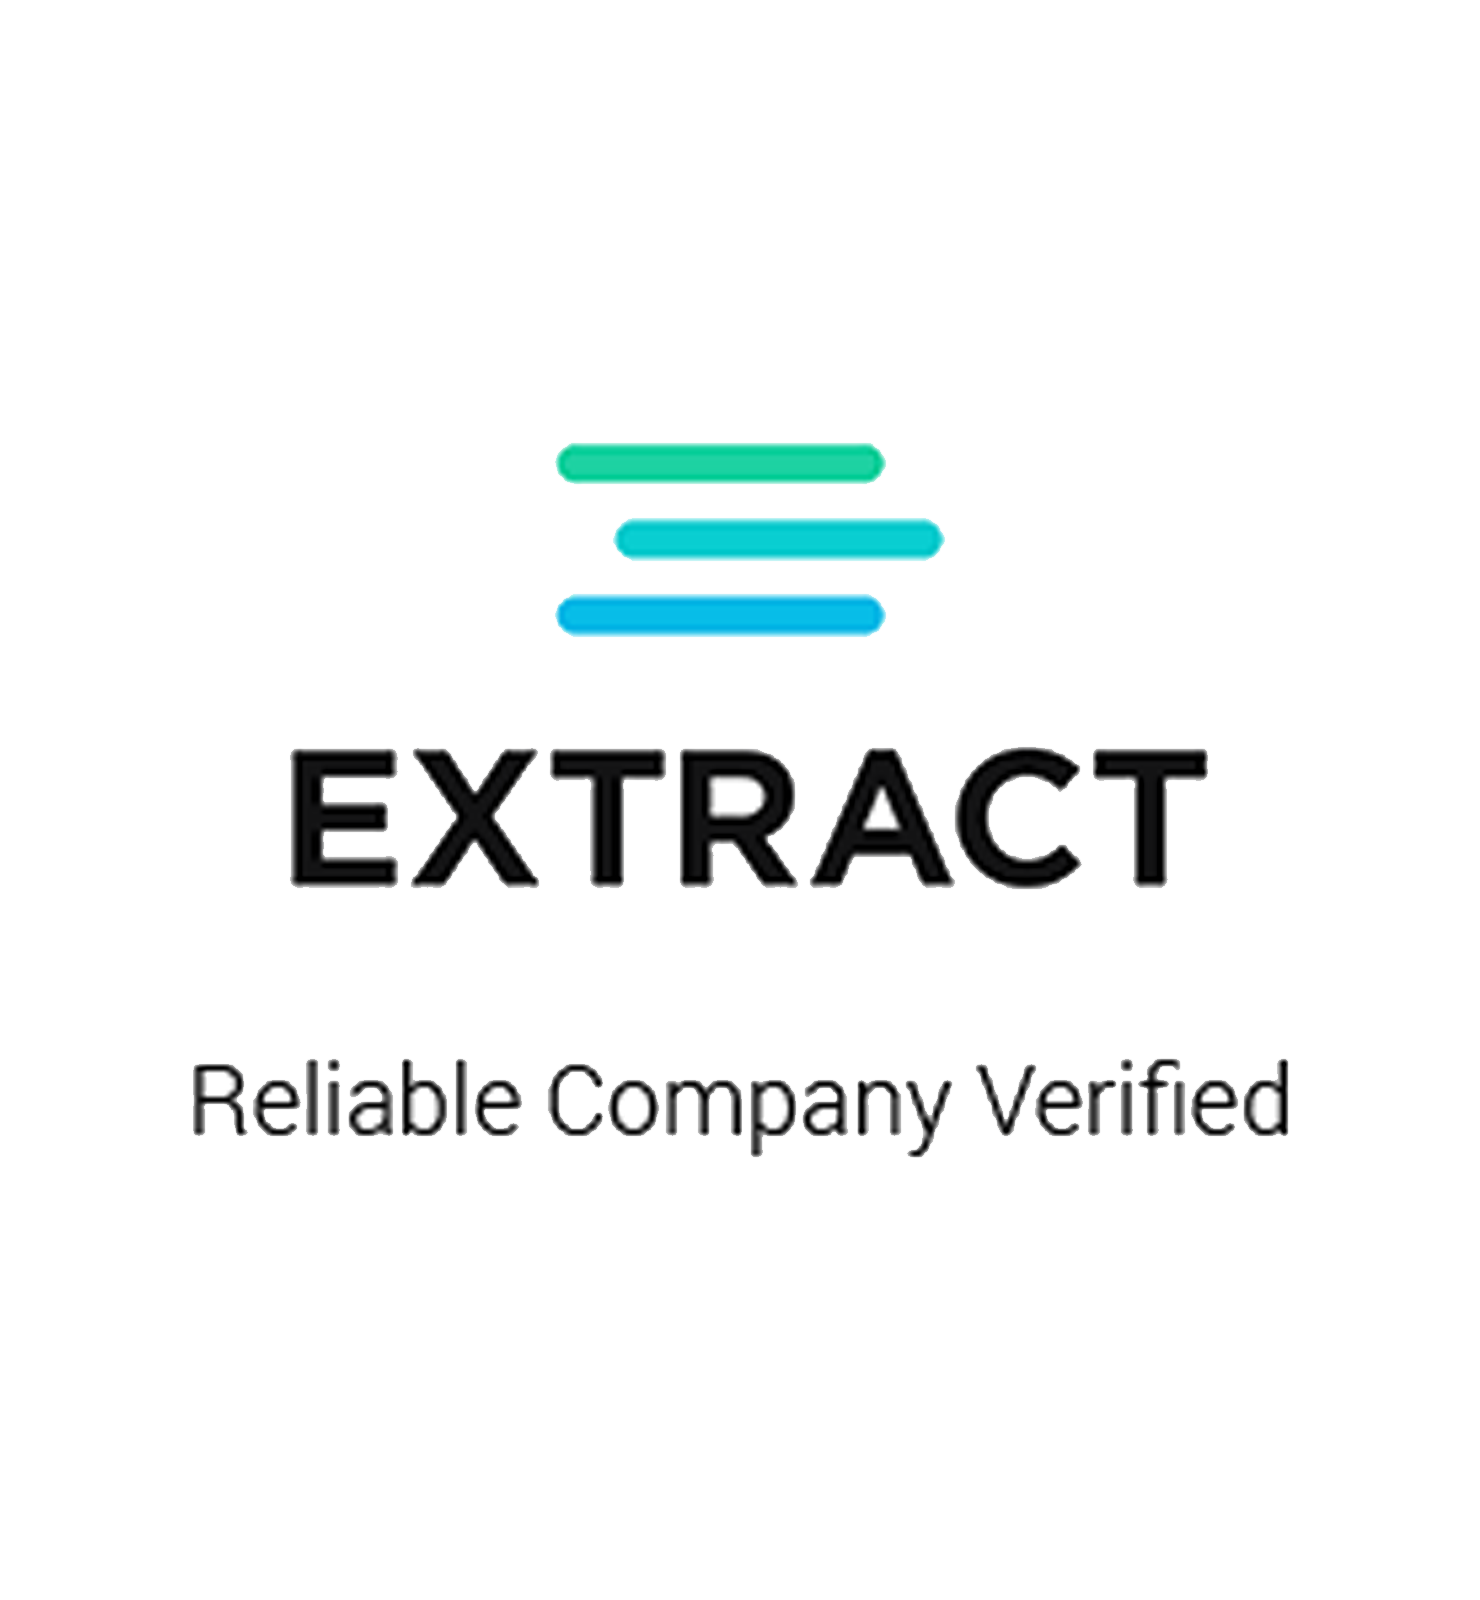 Extract Reliable Ecommerce Company